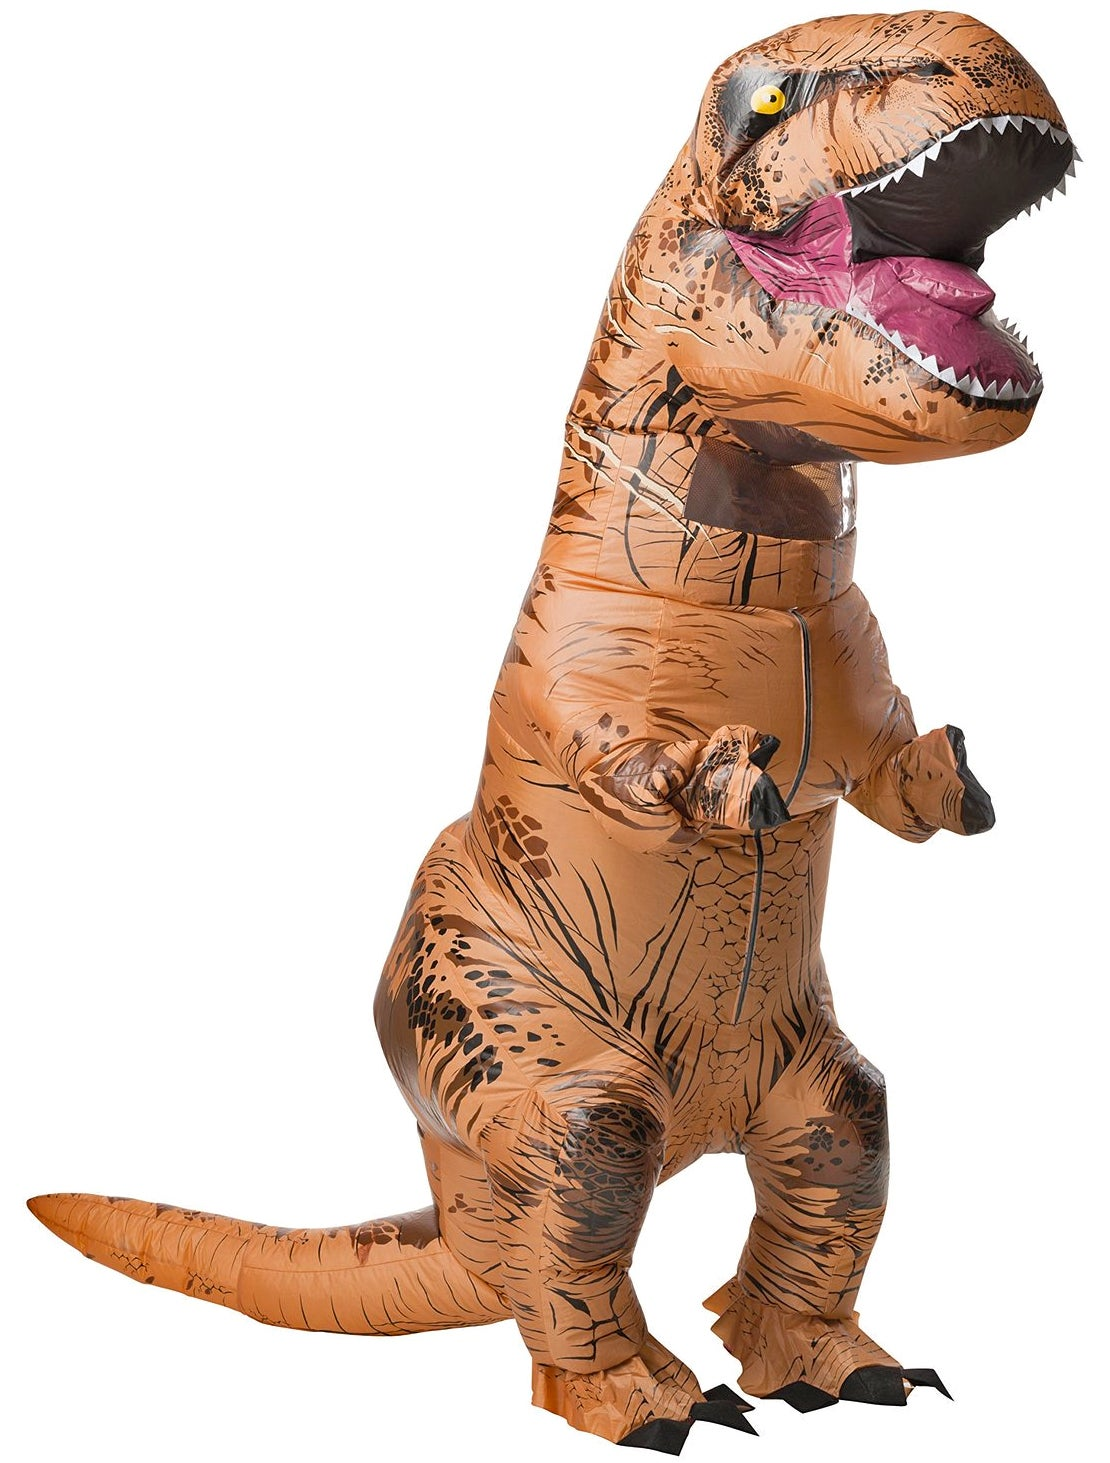 Here's Your 'This Is the Best I Could do' Jurassic World Halloween Costume